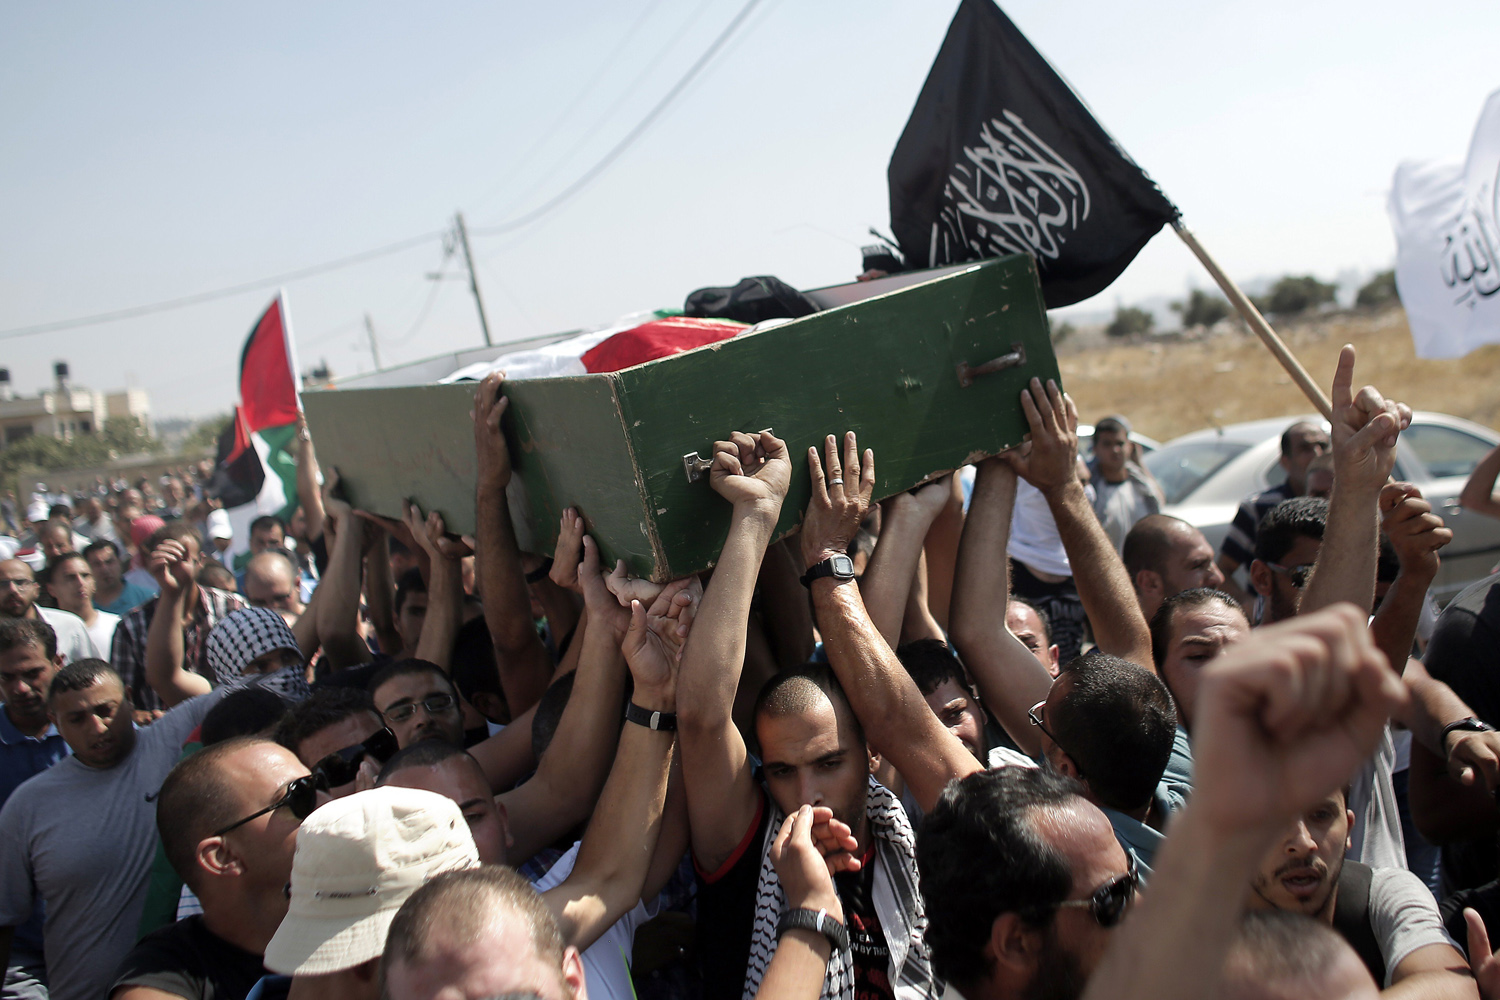 Jul. 4, 2014. Relatives and friends of Mohammed Abu Khder, 16, carry his body to the mosque during his funeral in Shuafat, in Israeli annexed East Jerusalem.